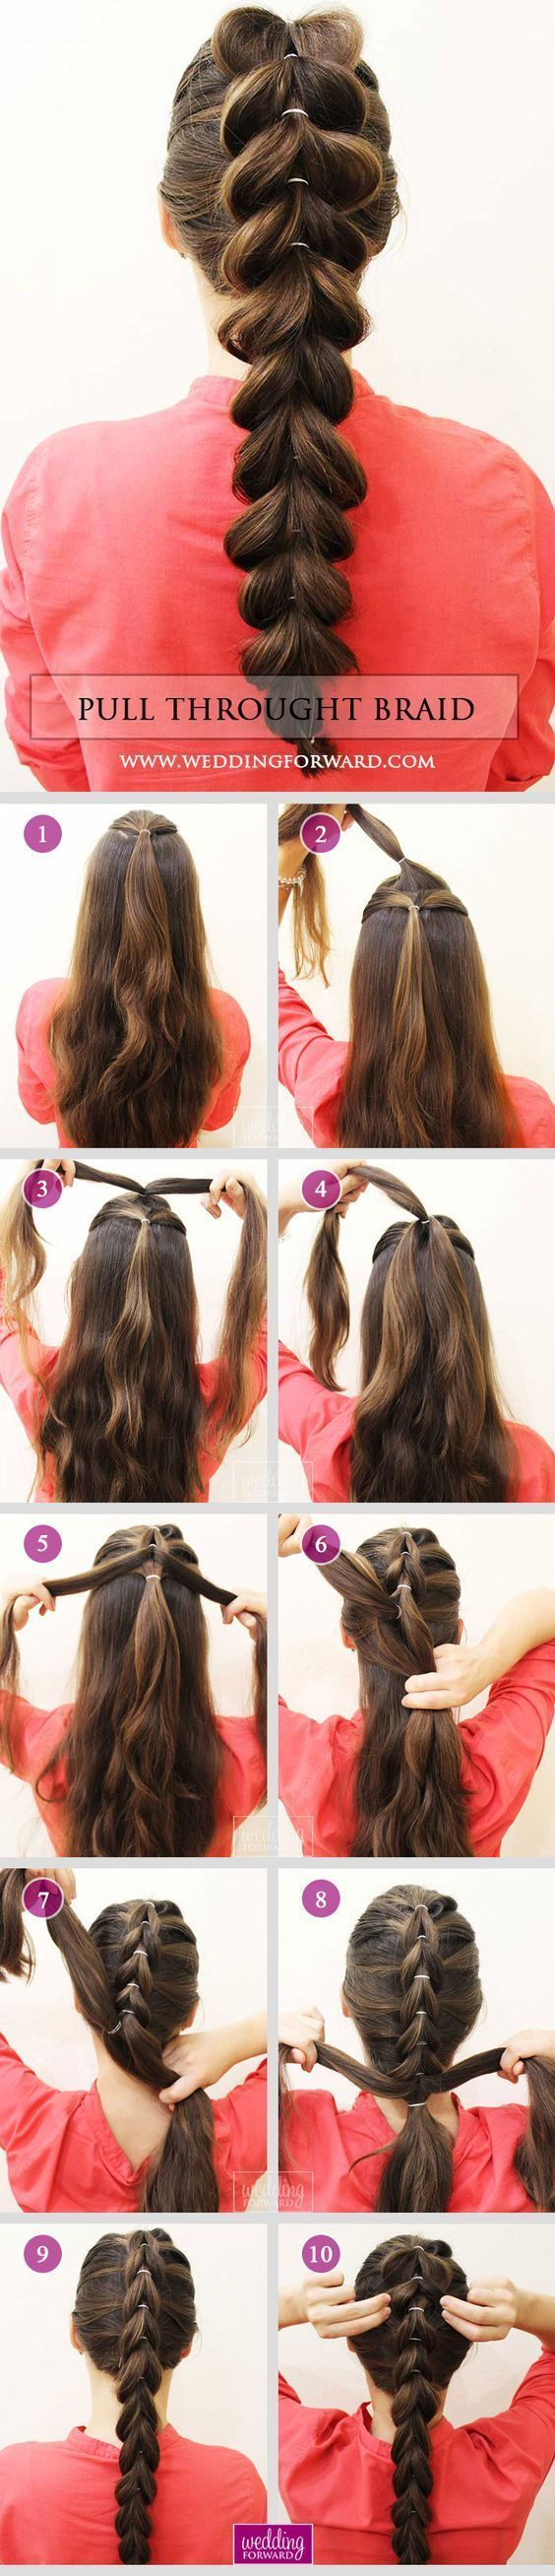 Add clip in extensions at the top of the head #easyupdo